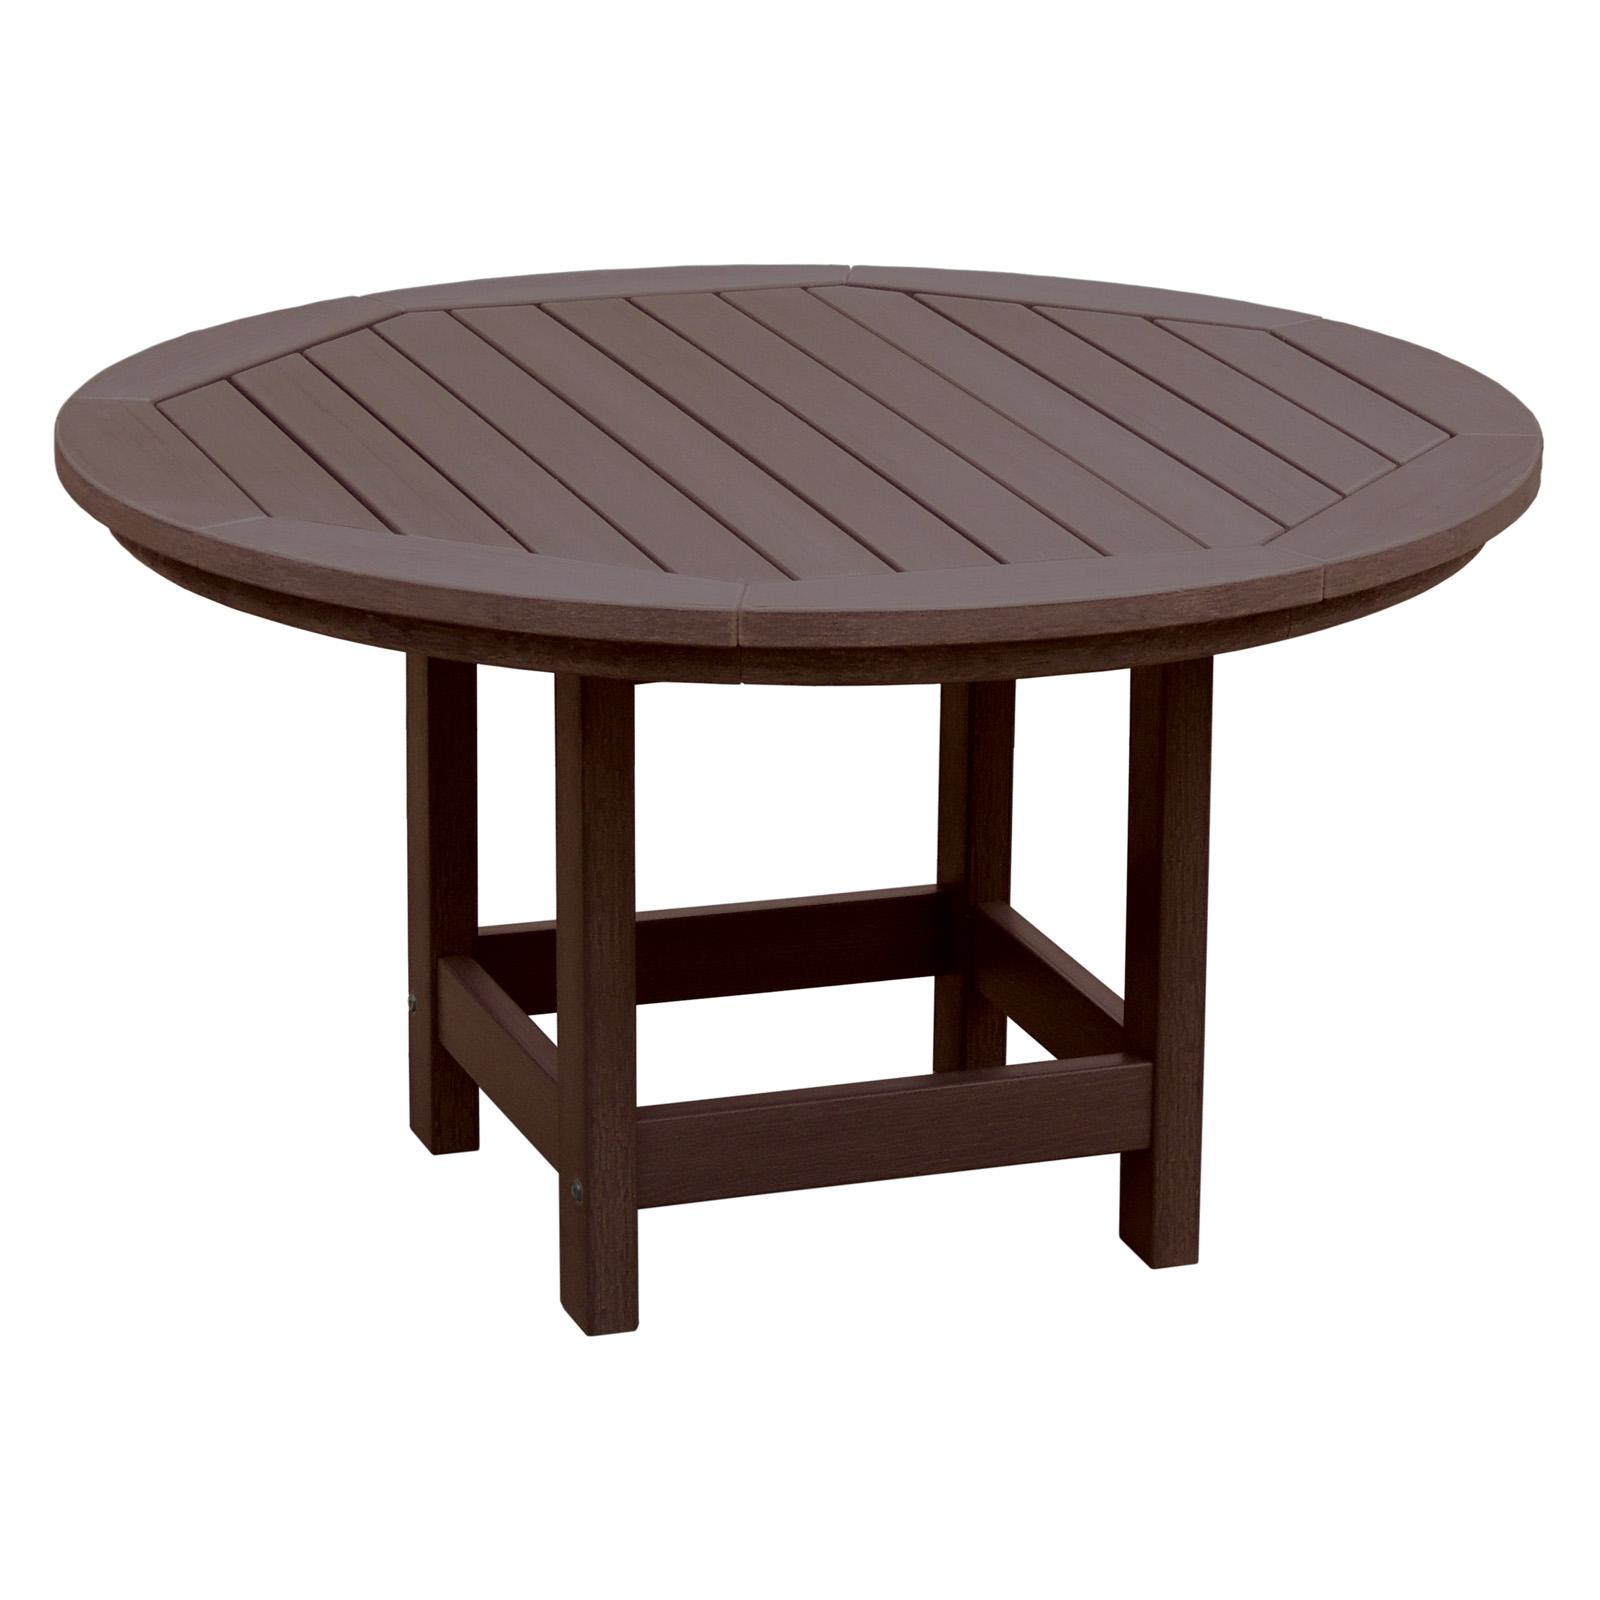 Outdoor Highwood Hamilton Recycled Plastic 36-in. Round A...